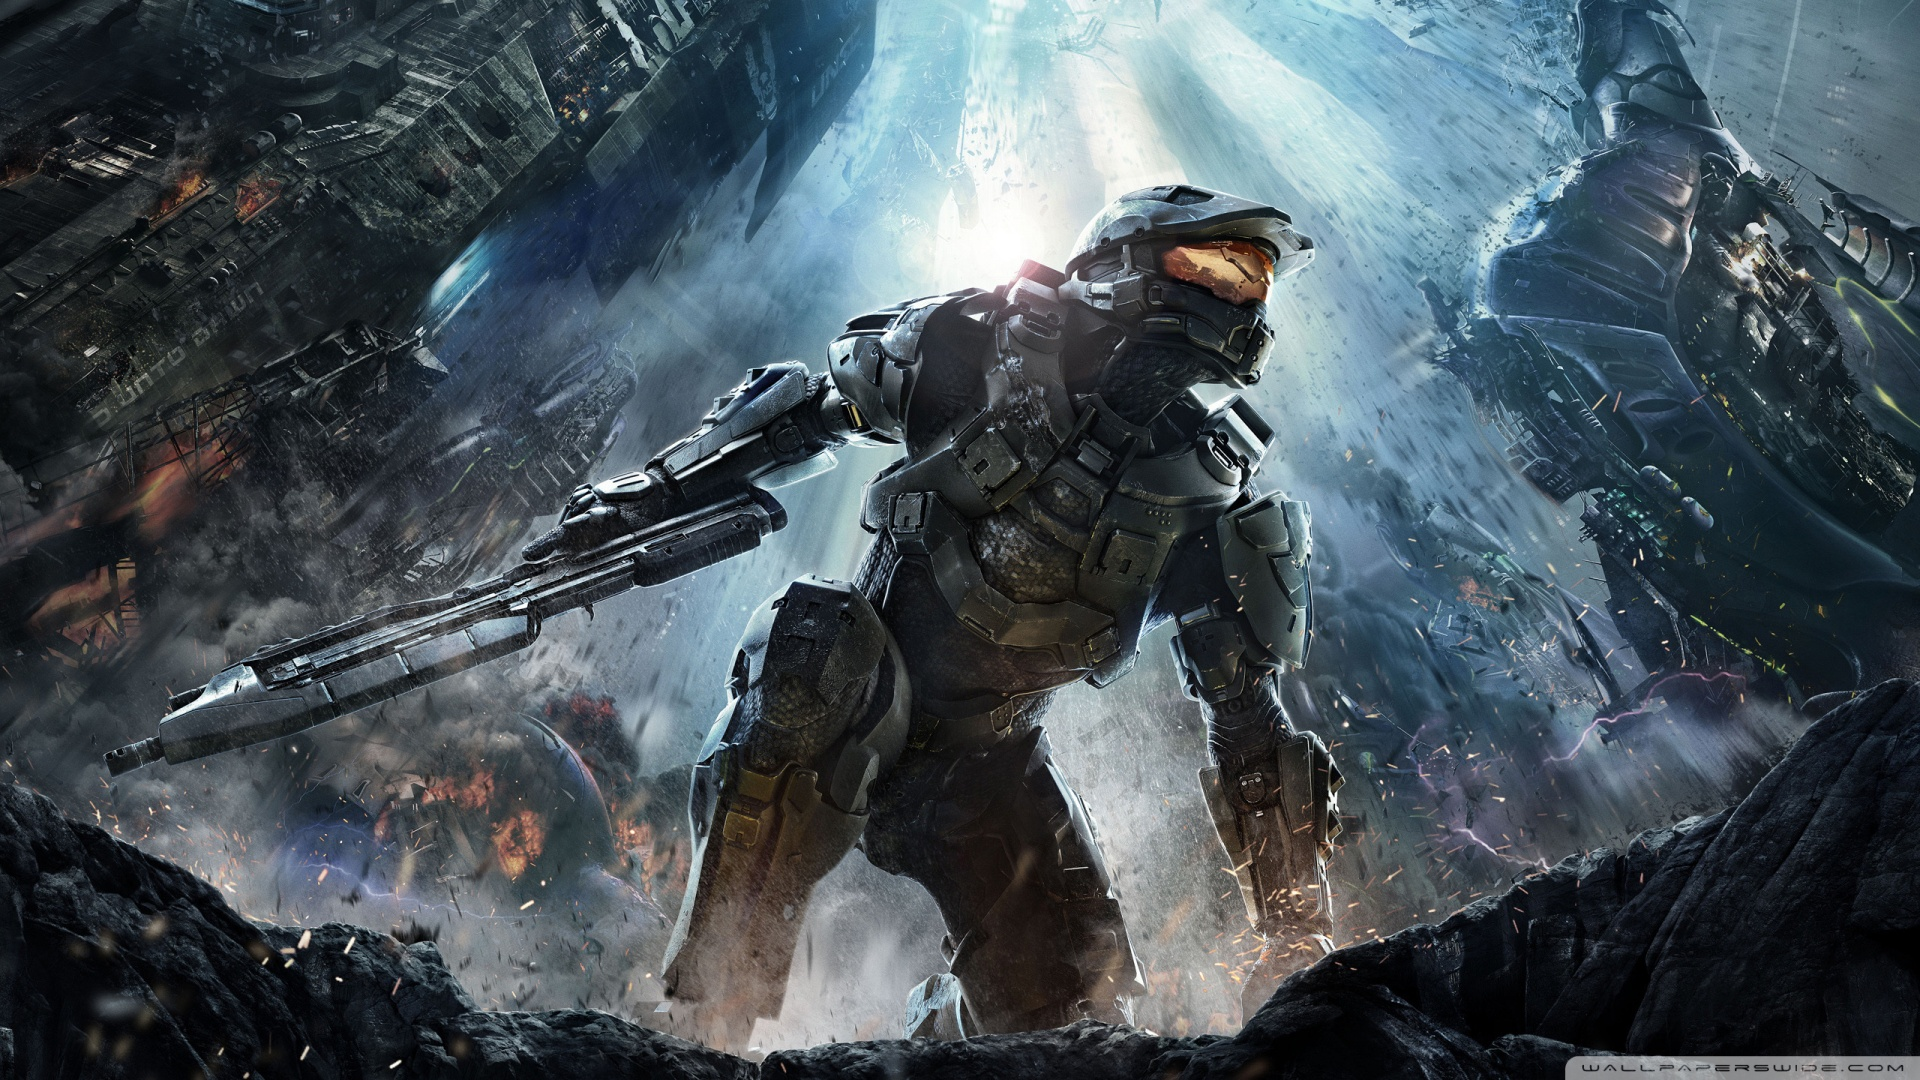 halo_4_2013-wallpaper-1920x1080